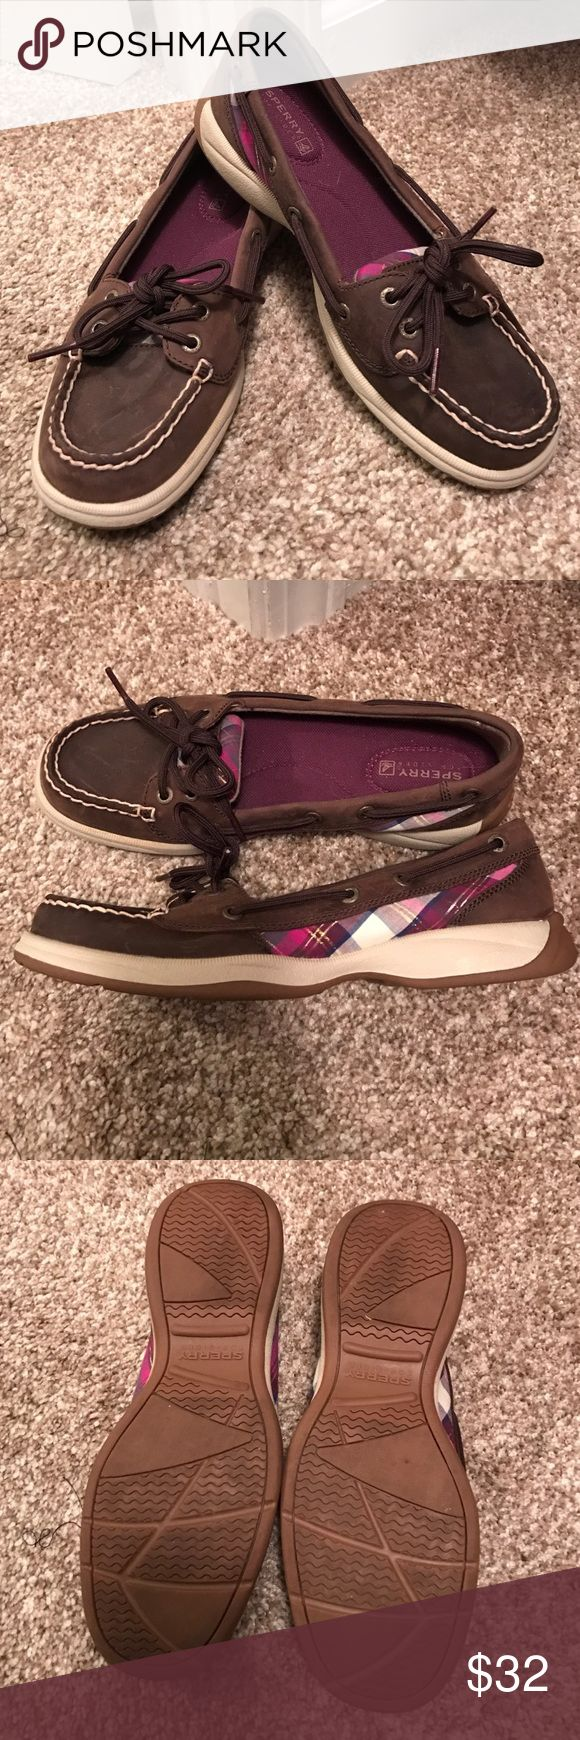 Sperry top sider!! Nearly perfect condition! Dark brown with pink and purple plaid on the sides. So cute!! Worn one time. Like new condition. Make me an offer!! Sperry Top-Sider Shoes Flats & Loafers